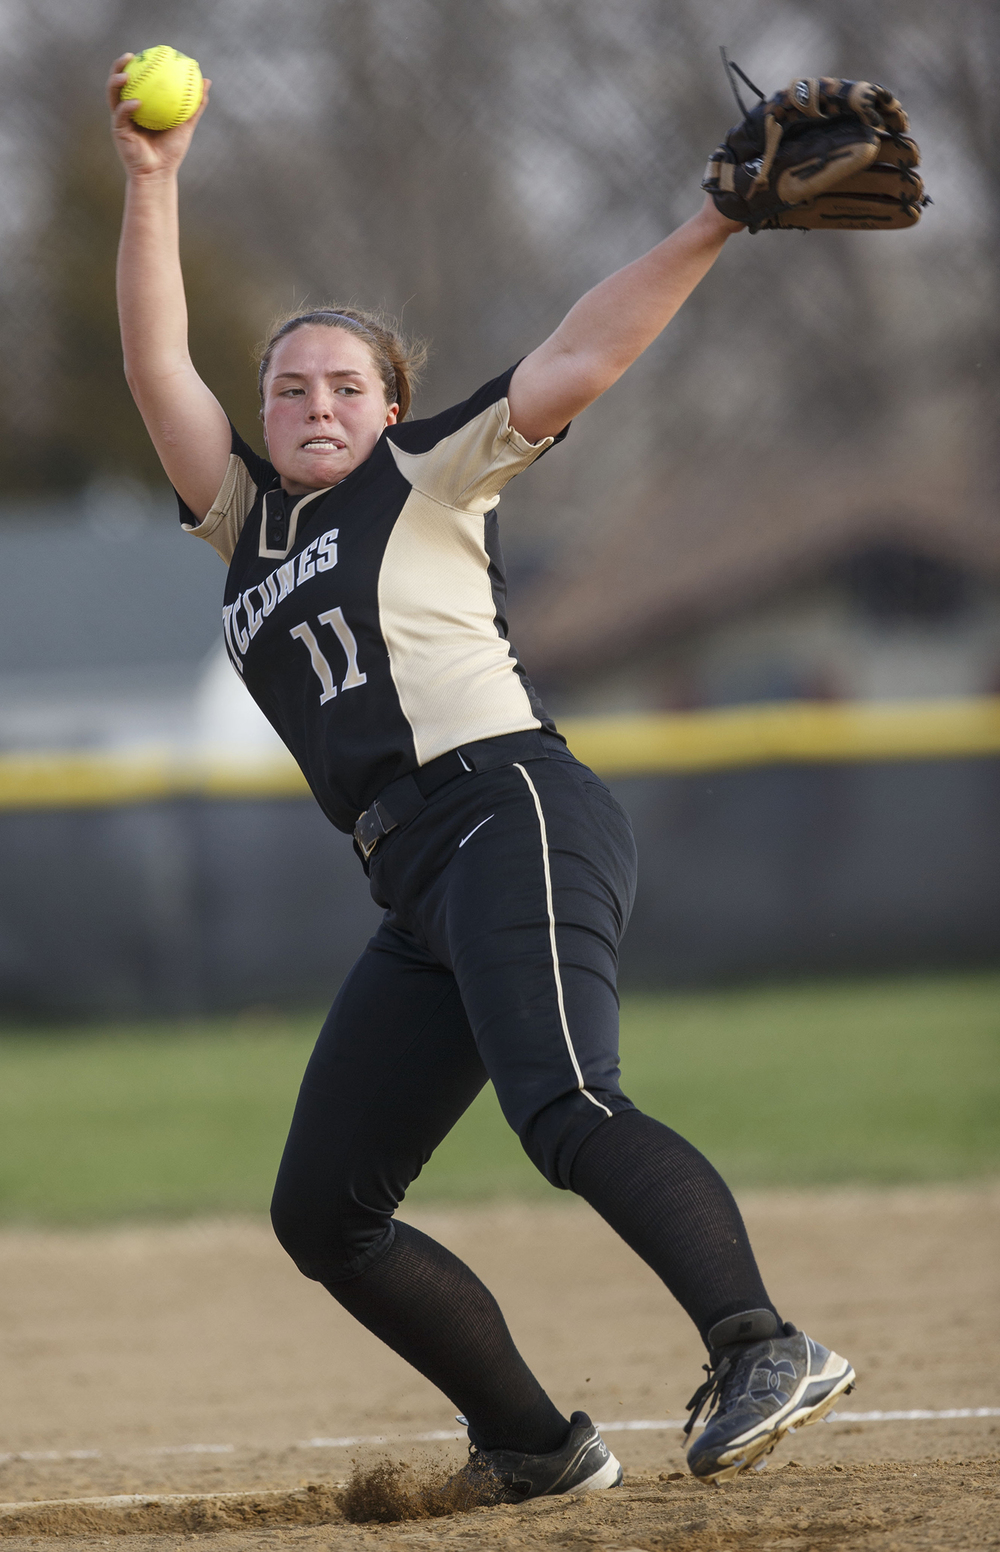 Sacred Heart-Griffin's Whitney David wins up for a pitch against Chatham Glenwood at Sacred Heart-Griffin West Wednesday April 8, 2015. Ted Schurter/The State Journal-Register